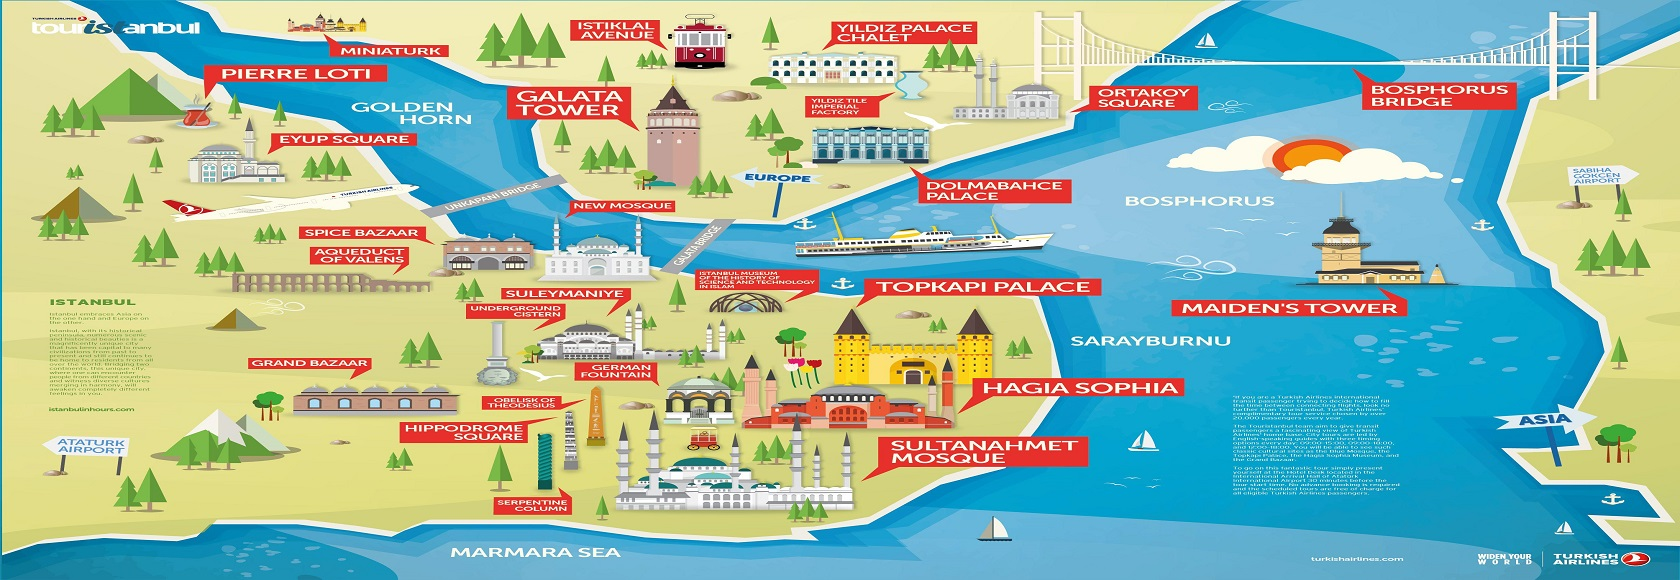 Istanbul-Tourist-Attractions-Map